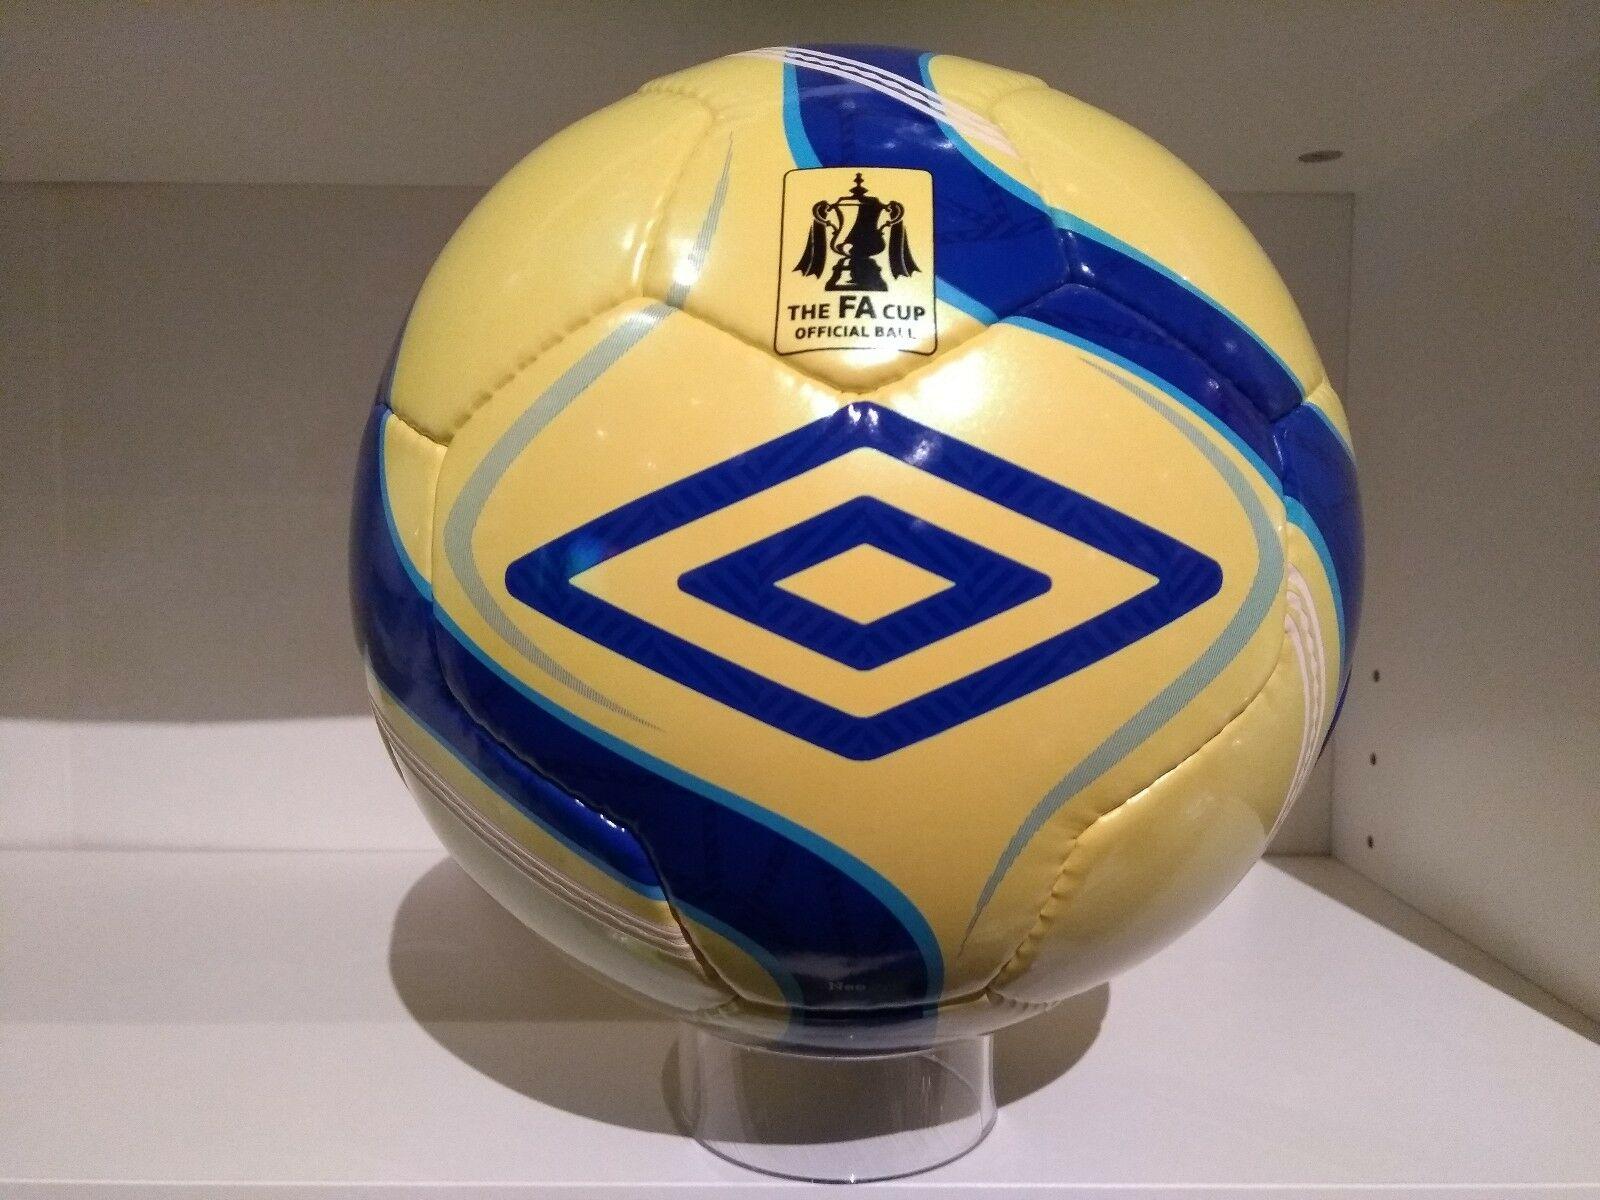 Umbro NeoPro FA Cup official match ball  2012/2013 (Hi-Vis)